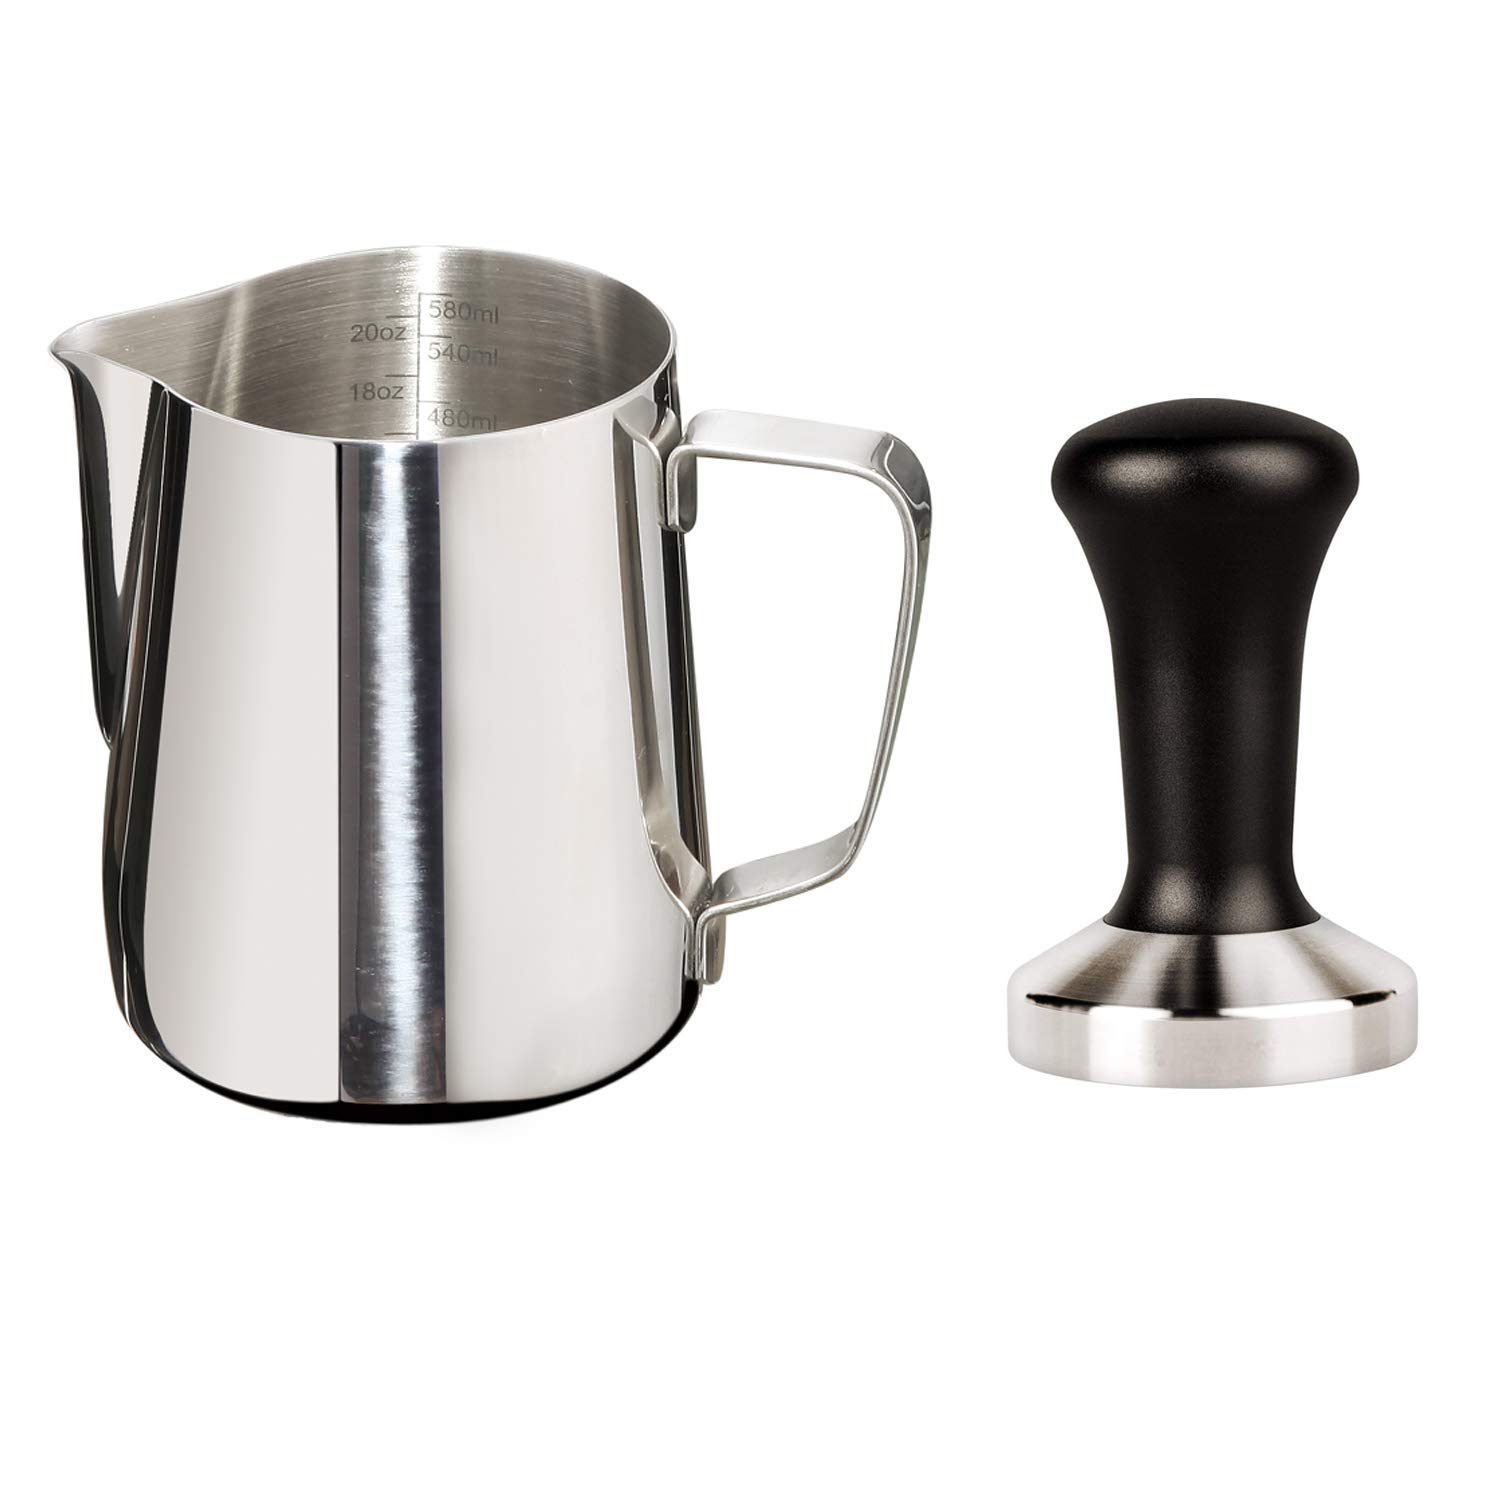 Joytata 20oz Milk Frothing Pitcher 58mm Stainless Steel Base Espresso Tamper-Milk Pitcher with Measurement Scale Stainless Steel Steam Pitcher Coffee Tamper Set Perfect for Espresso Machine-Froth Cup by Joytata